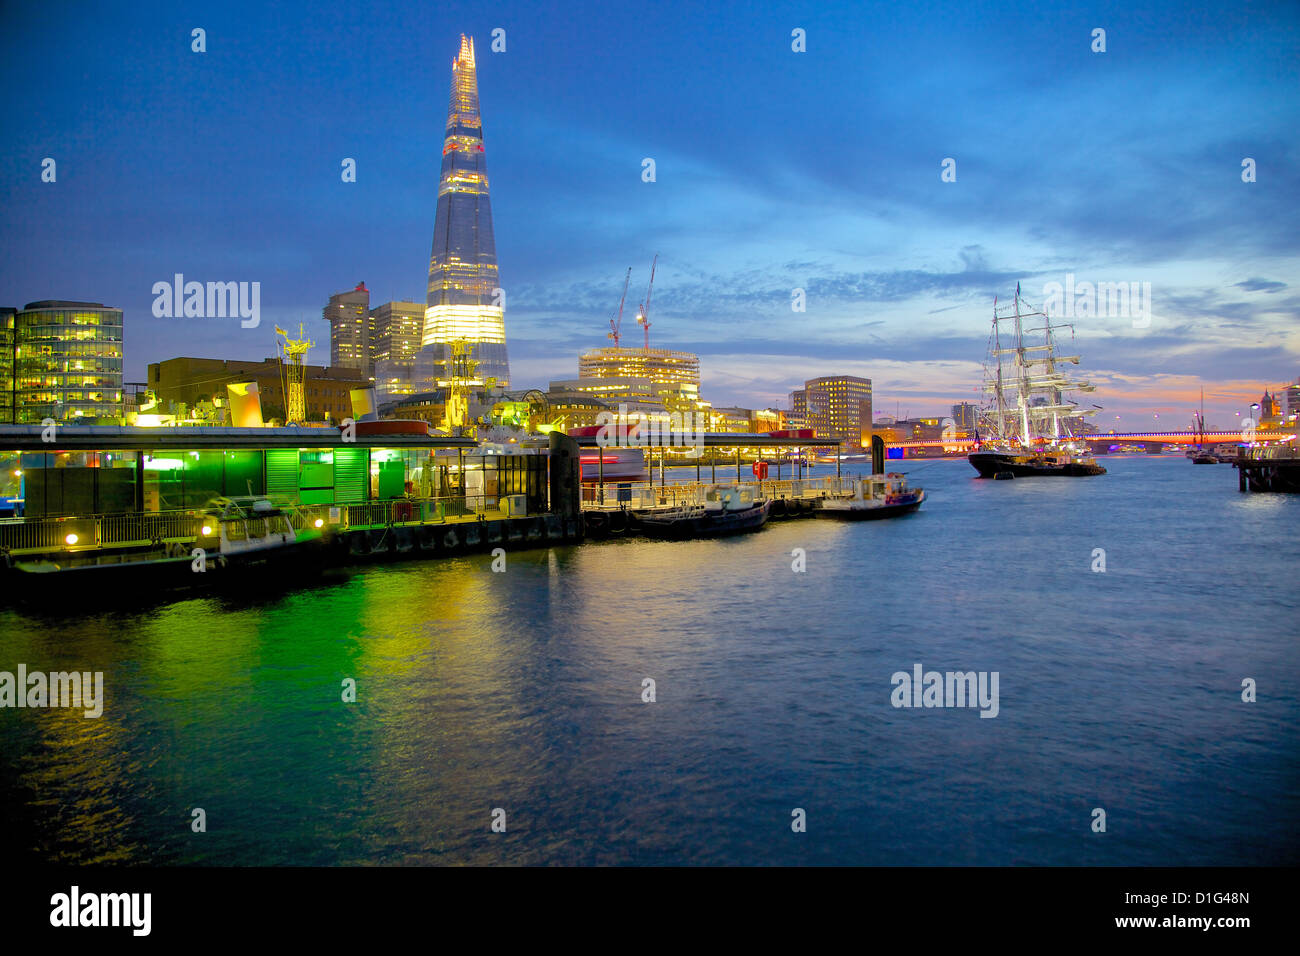 The Shard and River Thames from City of London, London, England, United Kingdom,  Europe - Stock Image